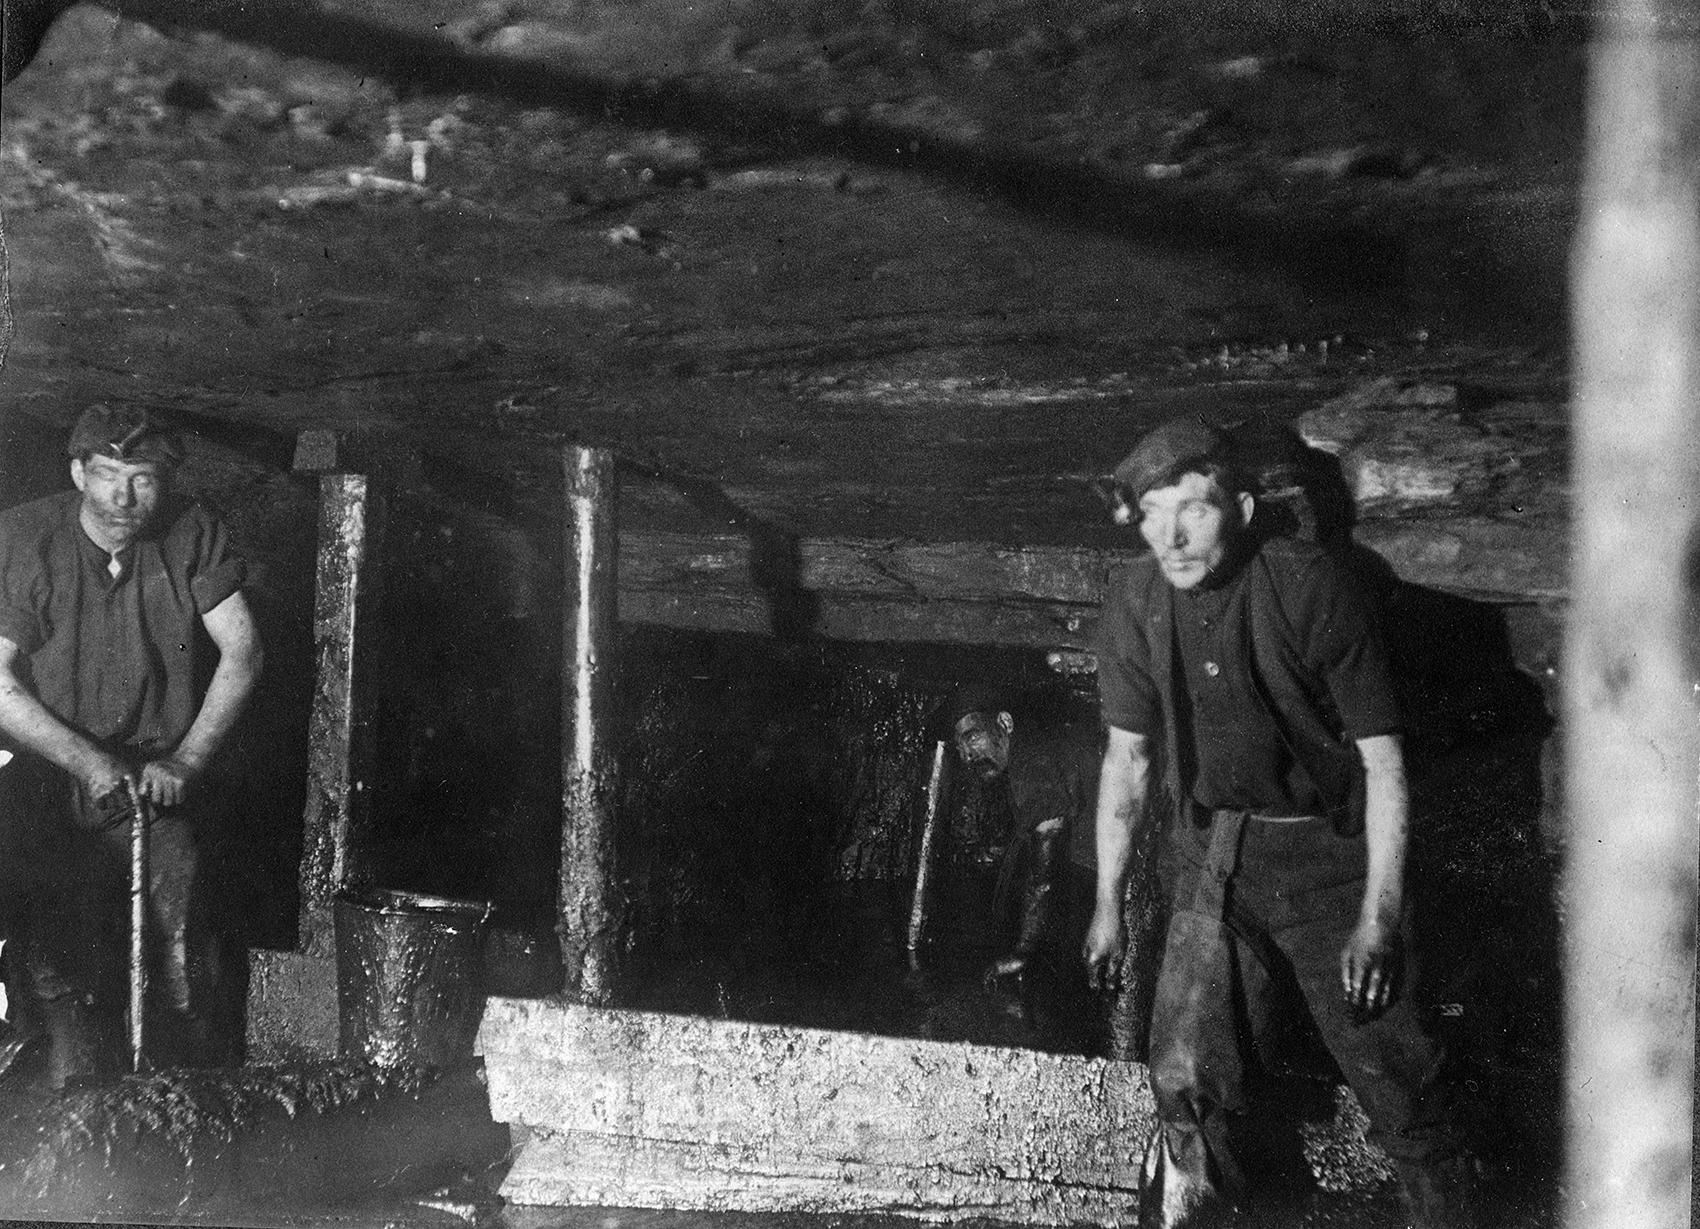 Cleaning Humph (poor quality) coal underground at Camp Colliery near Motherwell, around 1910.